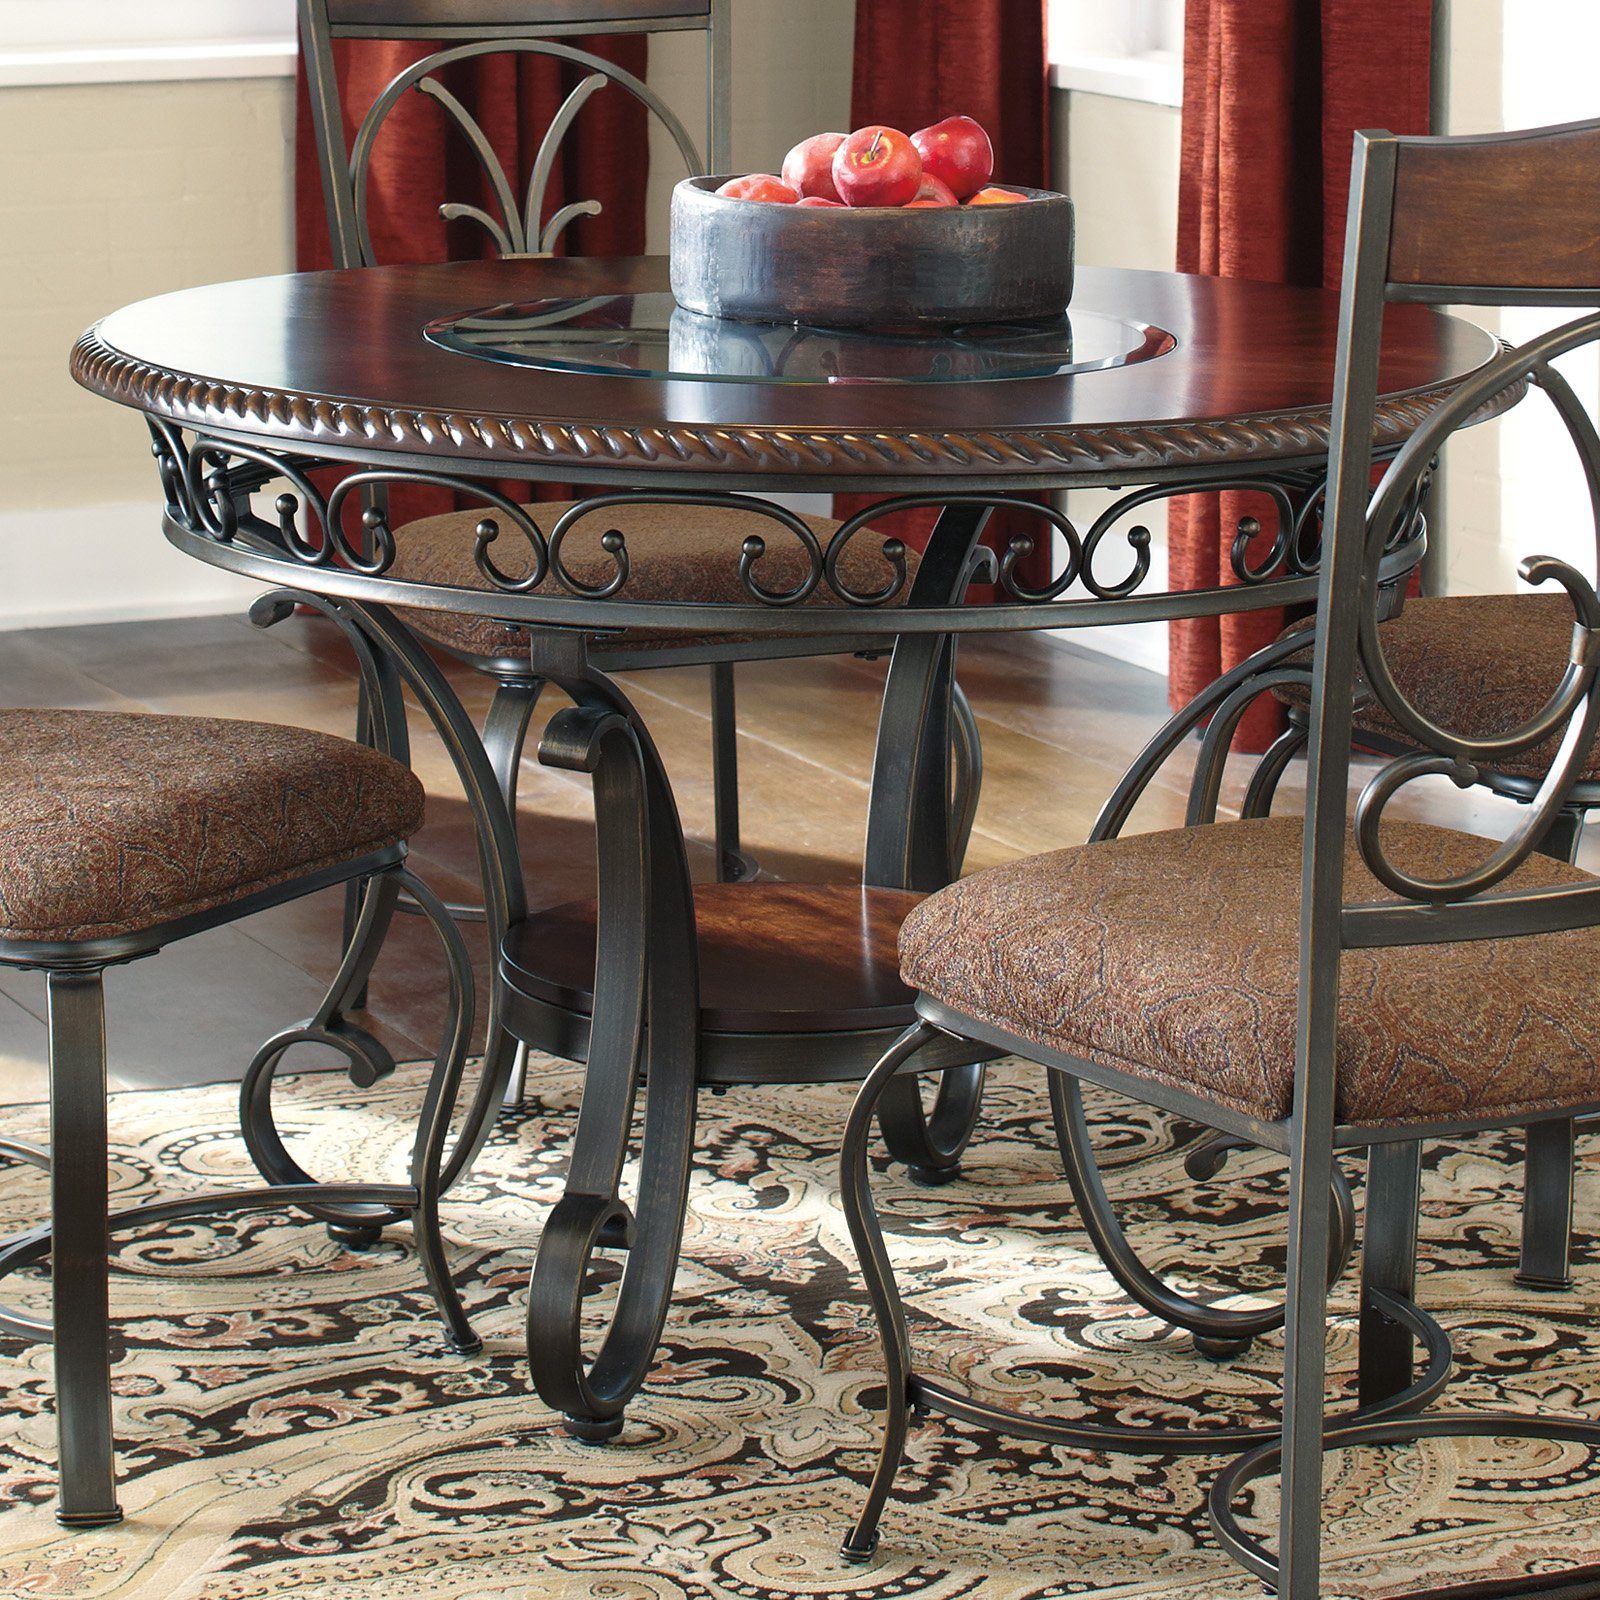 Signature Design by Ashley Glambrey Round Dining Table - Walmart.com